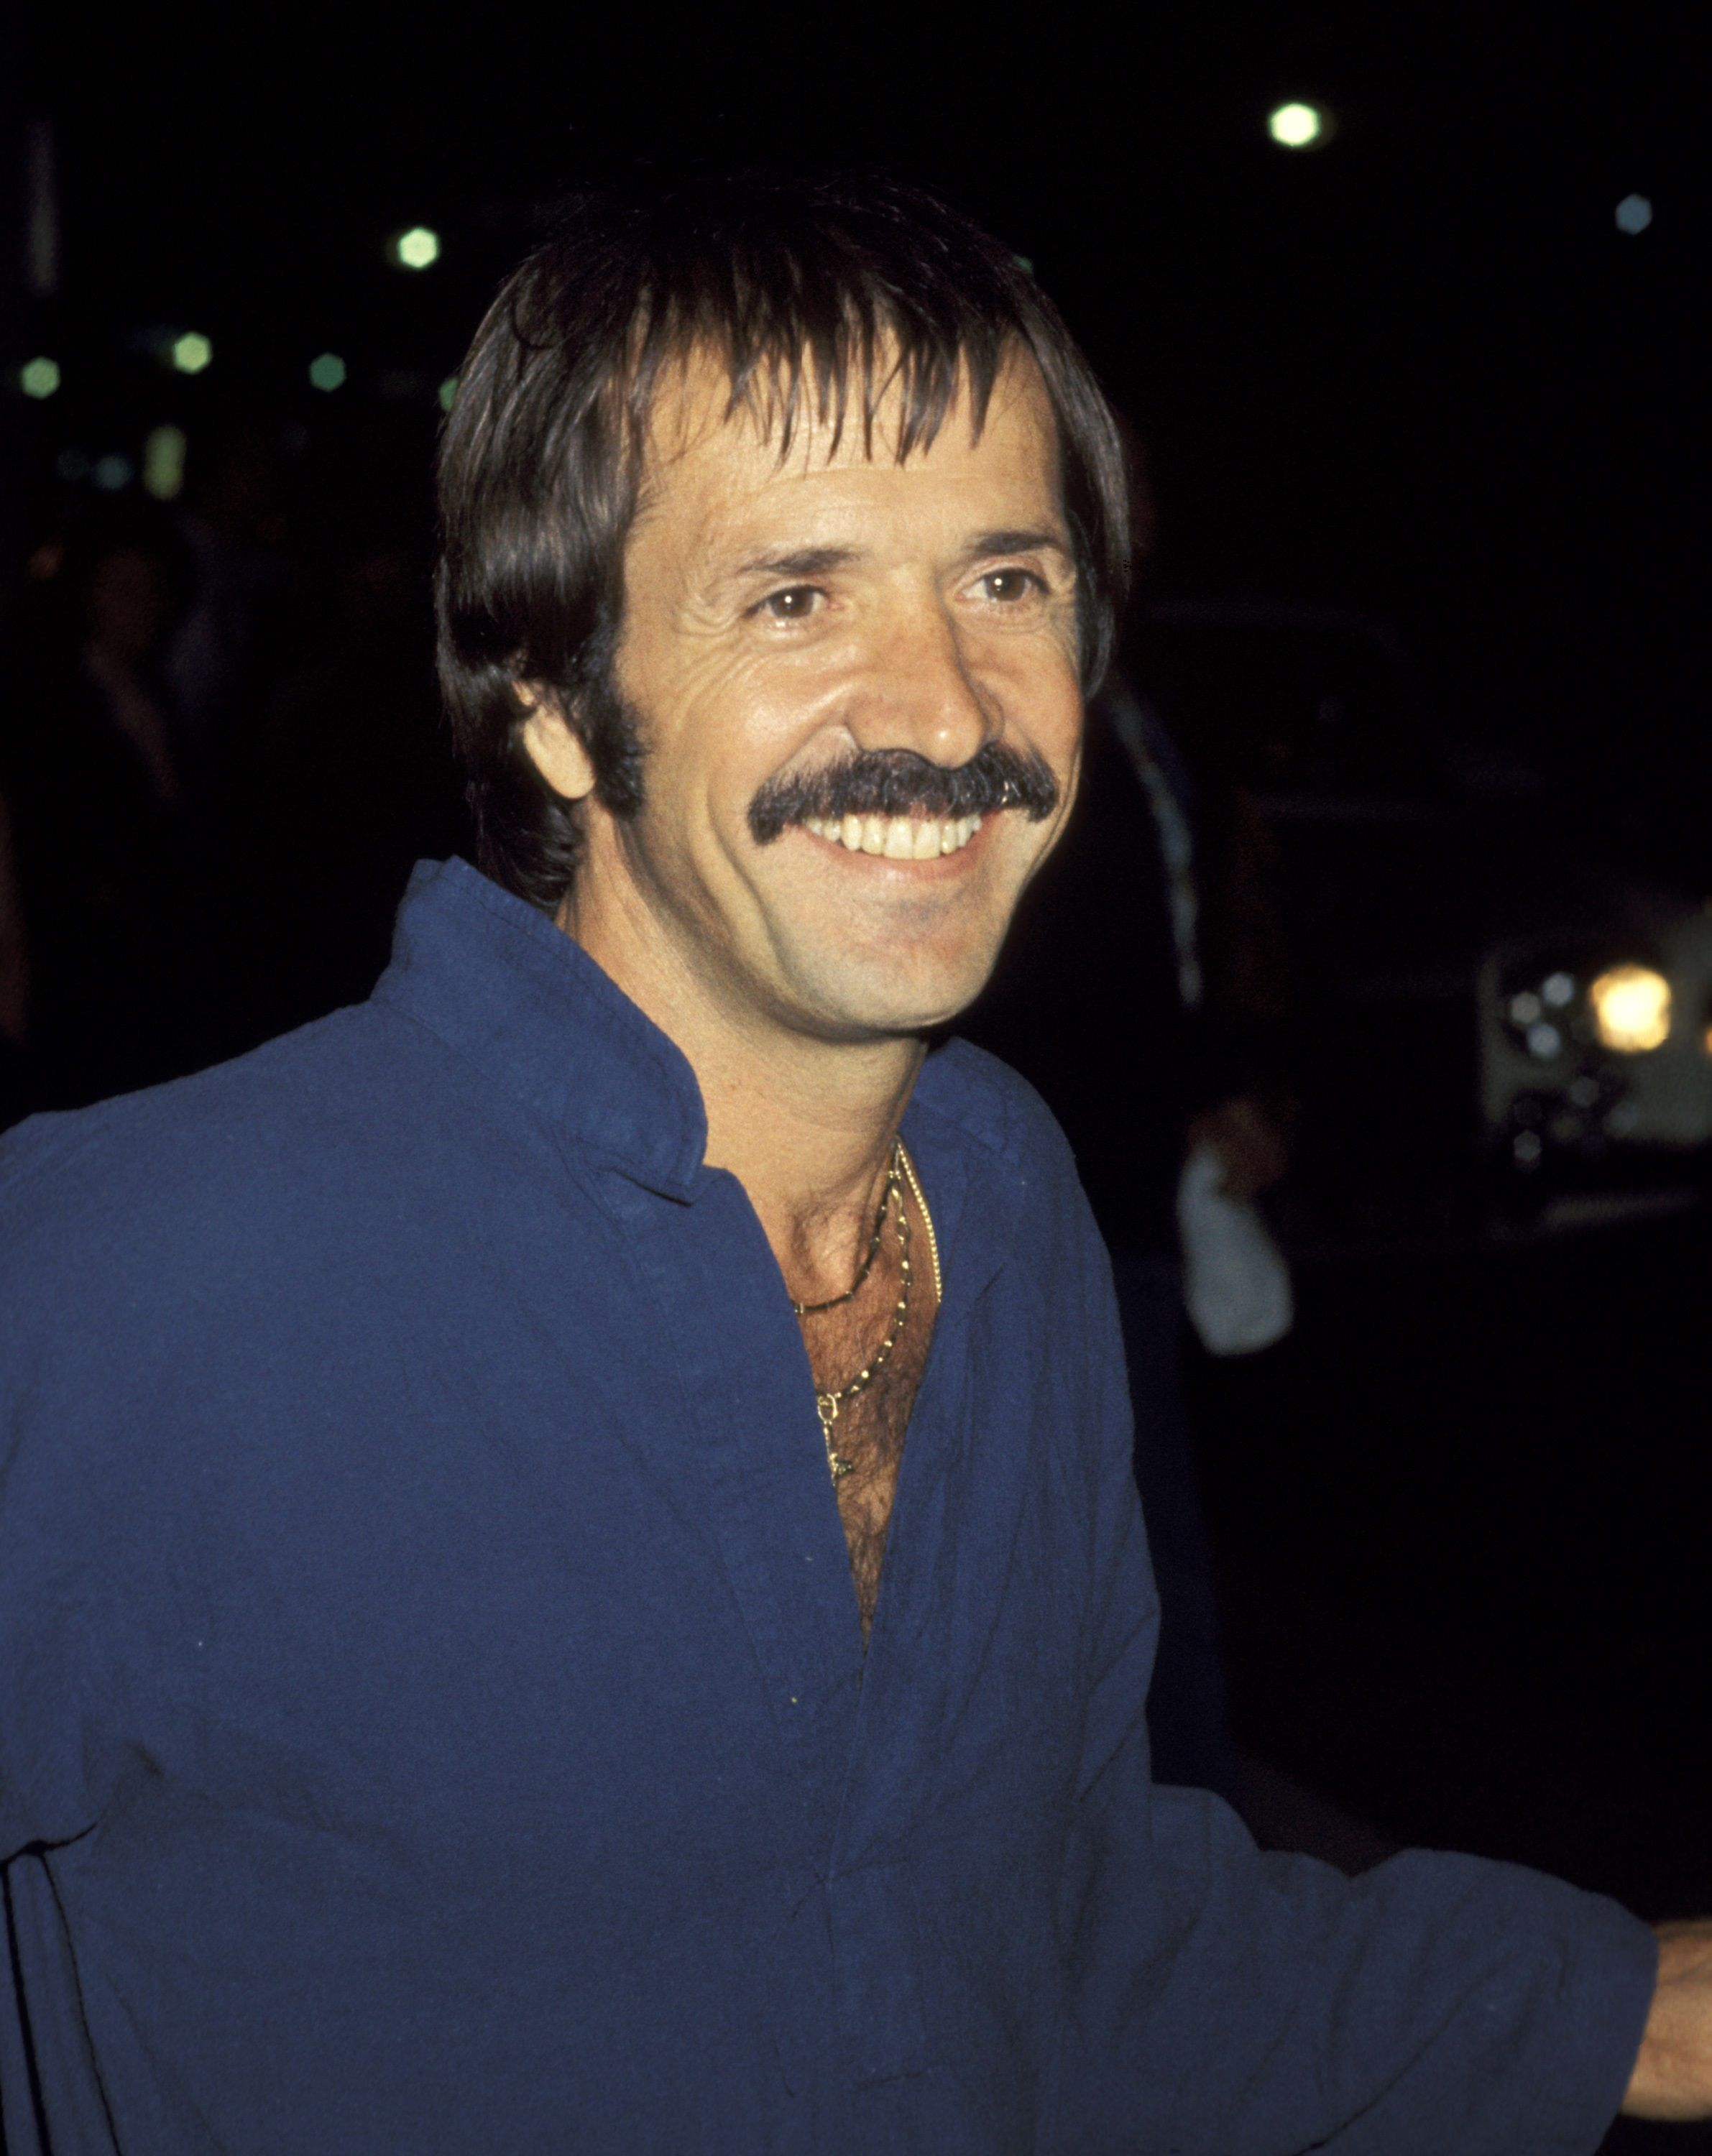 Celebrity Deaths 2005 - People who died in 2005| FiftiesWeb